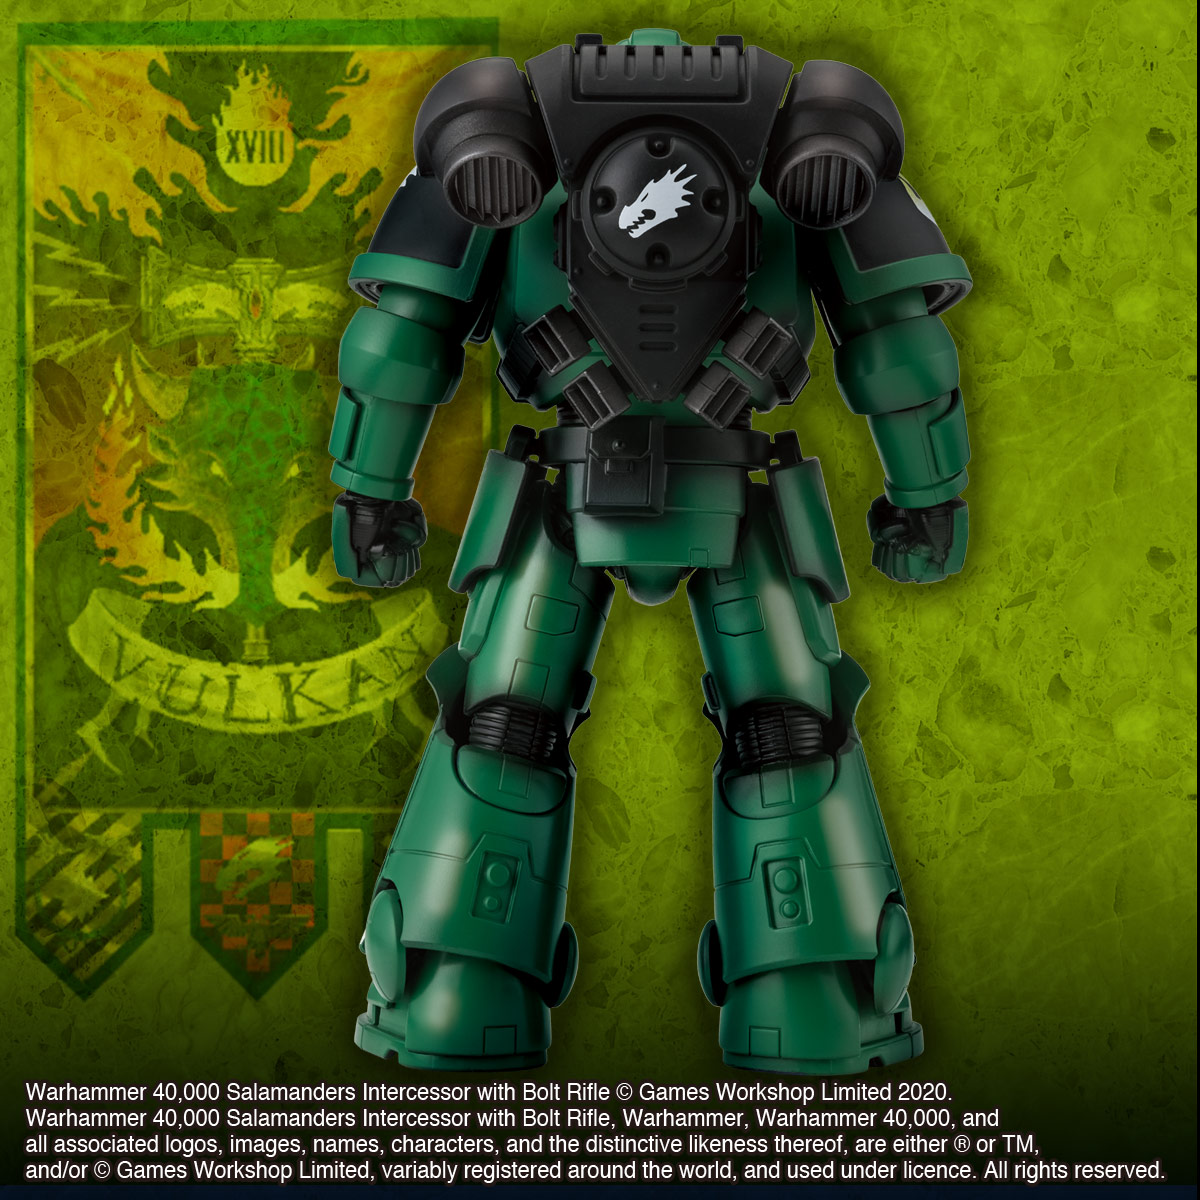 WARHAMMER 40,000 SALAMANDERS INTERCESSOR WITH BOLT RIFLE